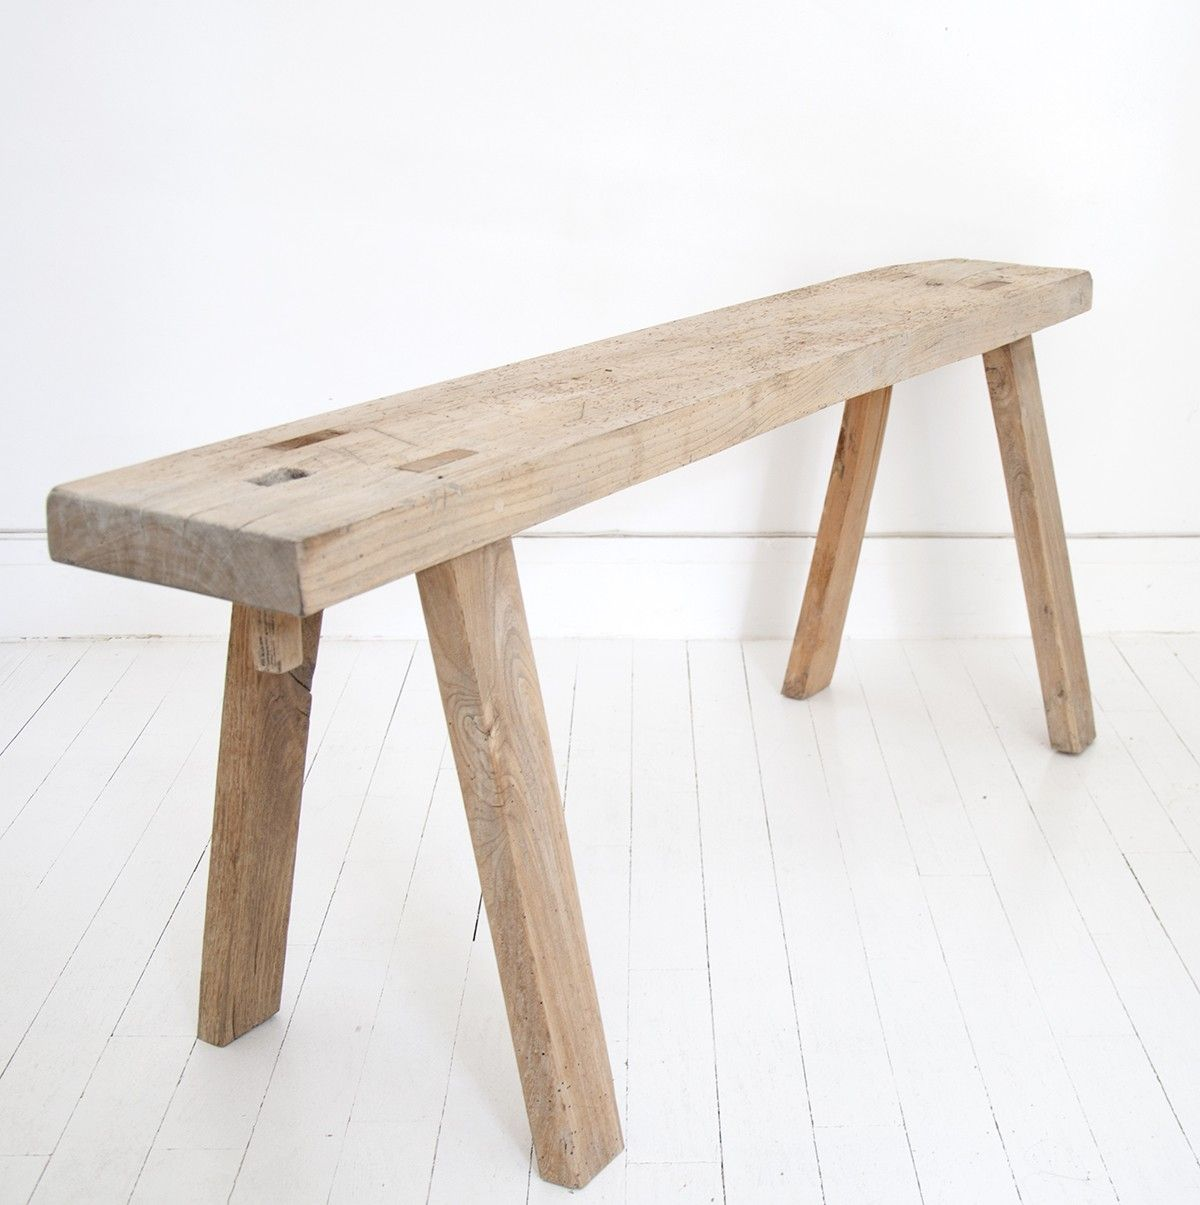 Banc Lucien Bel Ordinaire I Wood Seats I Pinterest  # Banc Bois Naturel